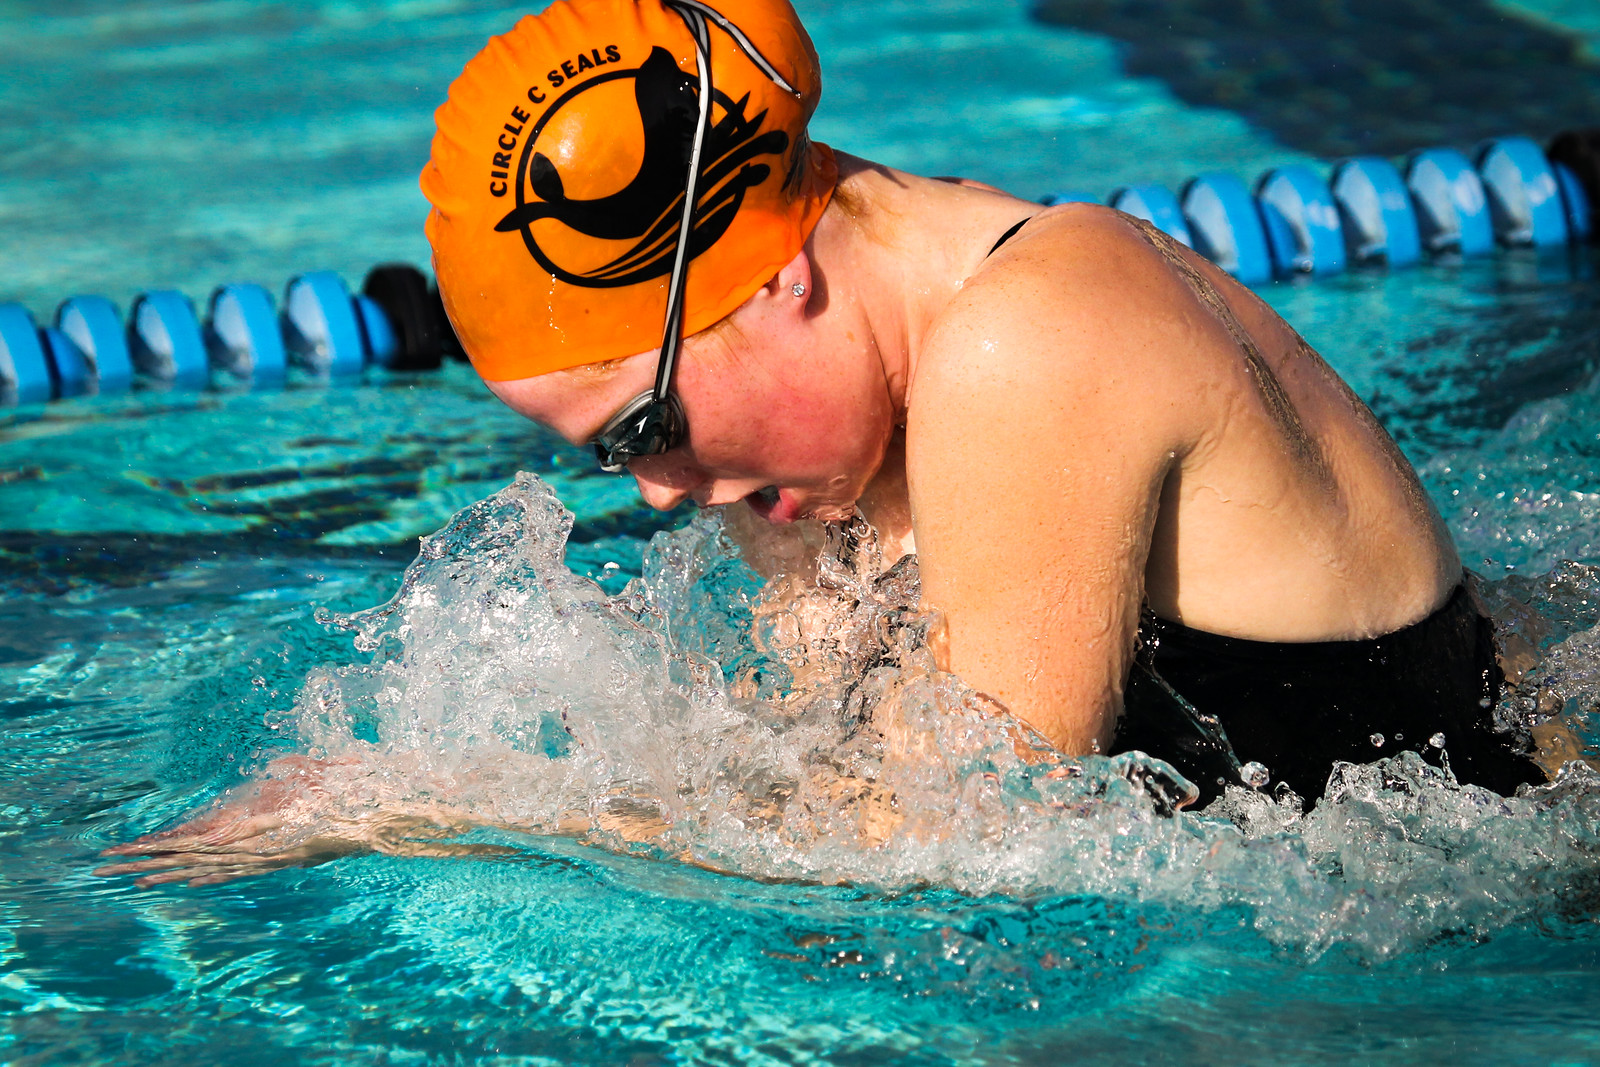 IMAGE: https://photos.smugmug.com/Sports/Swimming/Seals-Photos-2019/Attaway-Avery/i-N4NrrvQ/1/560844c5/X3/A73X0689-X3.jpg